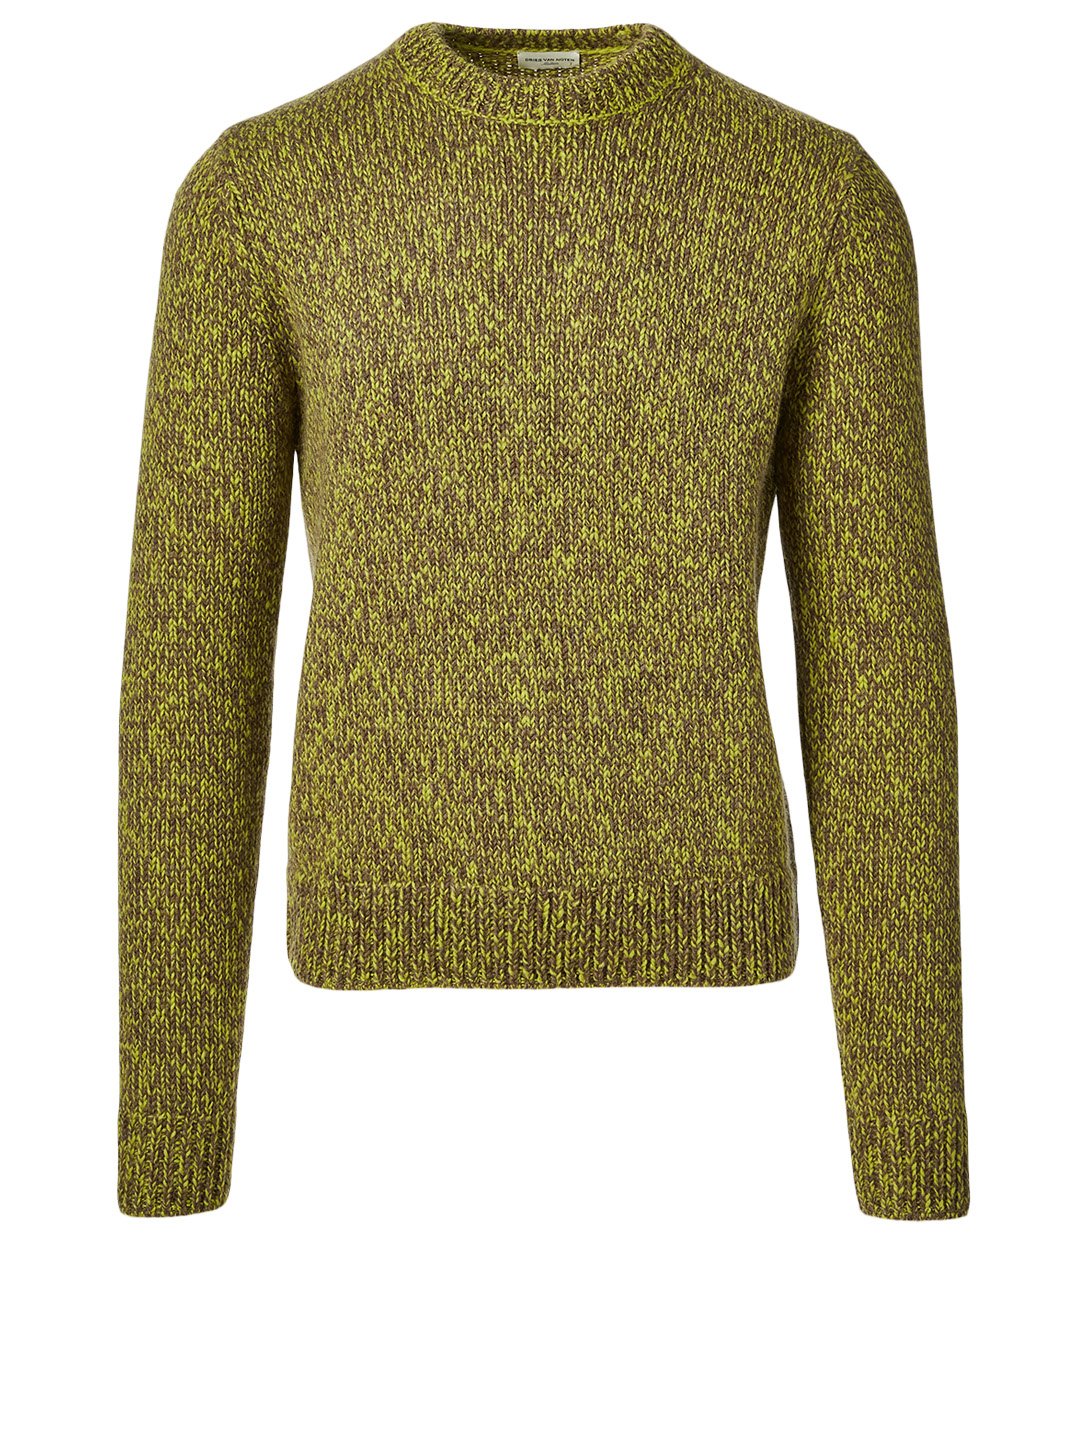 DRIES VAN NOTEN Mijou Wool Crewneck Sweater Men's Green